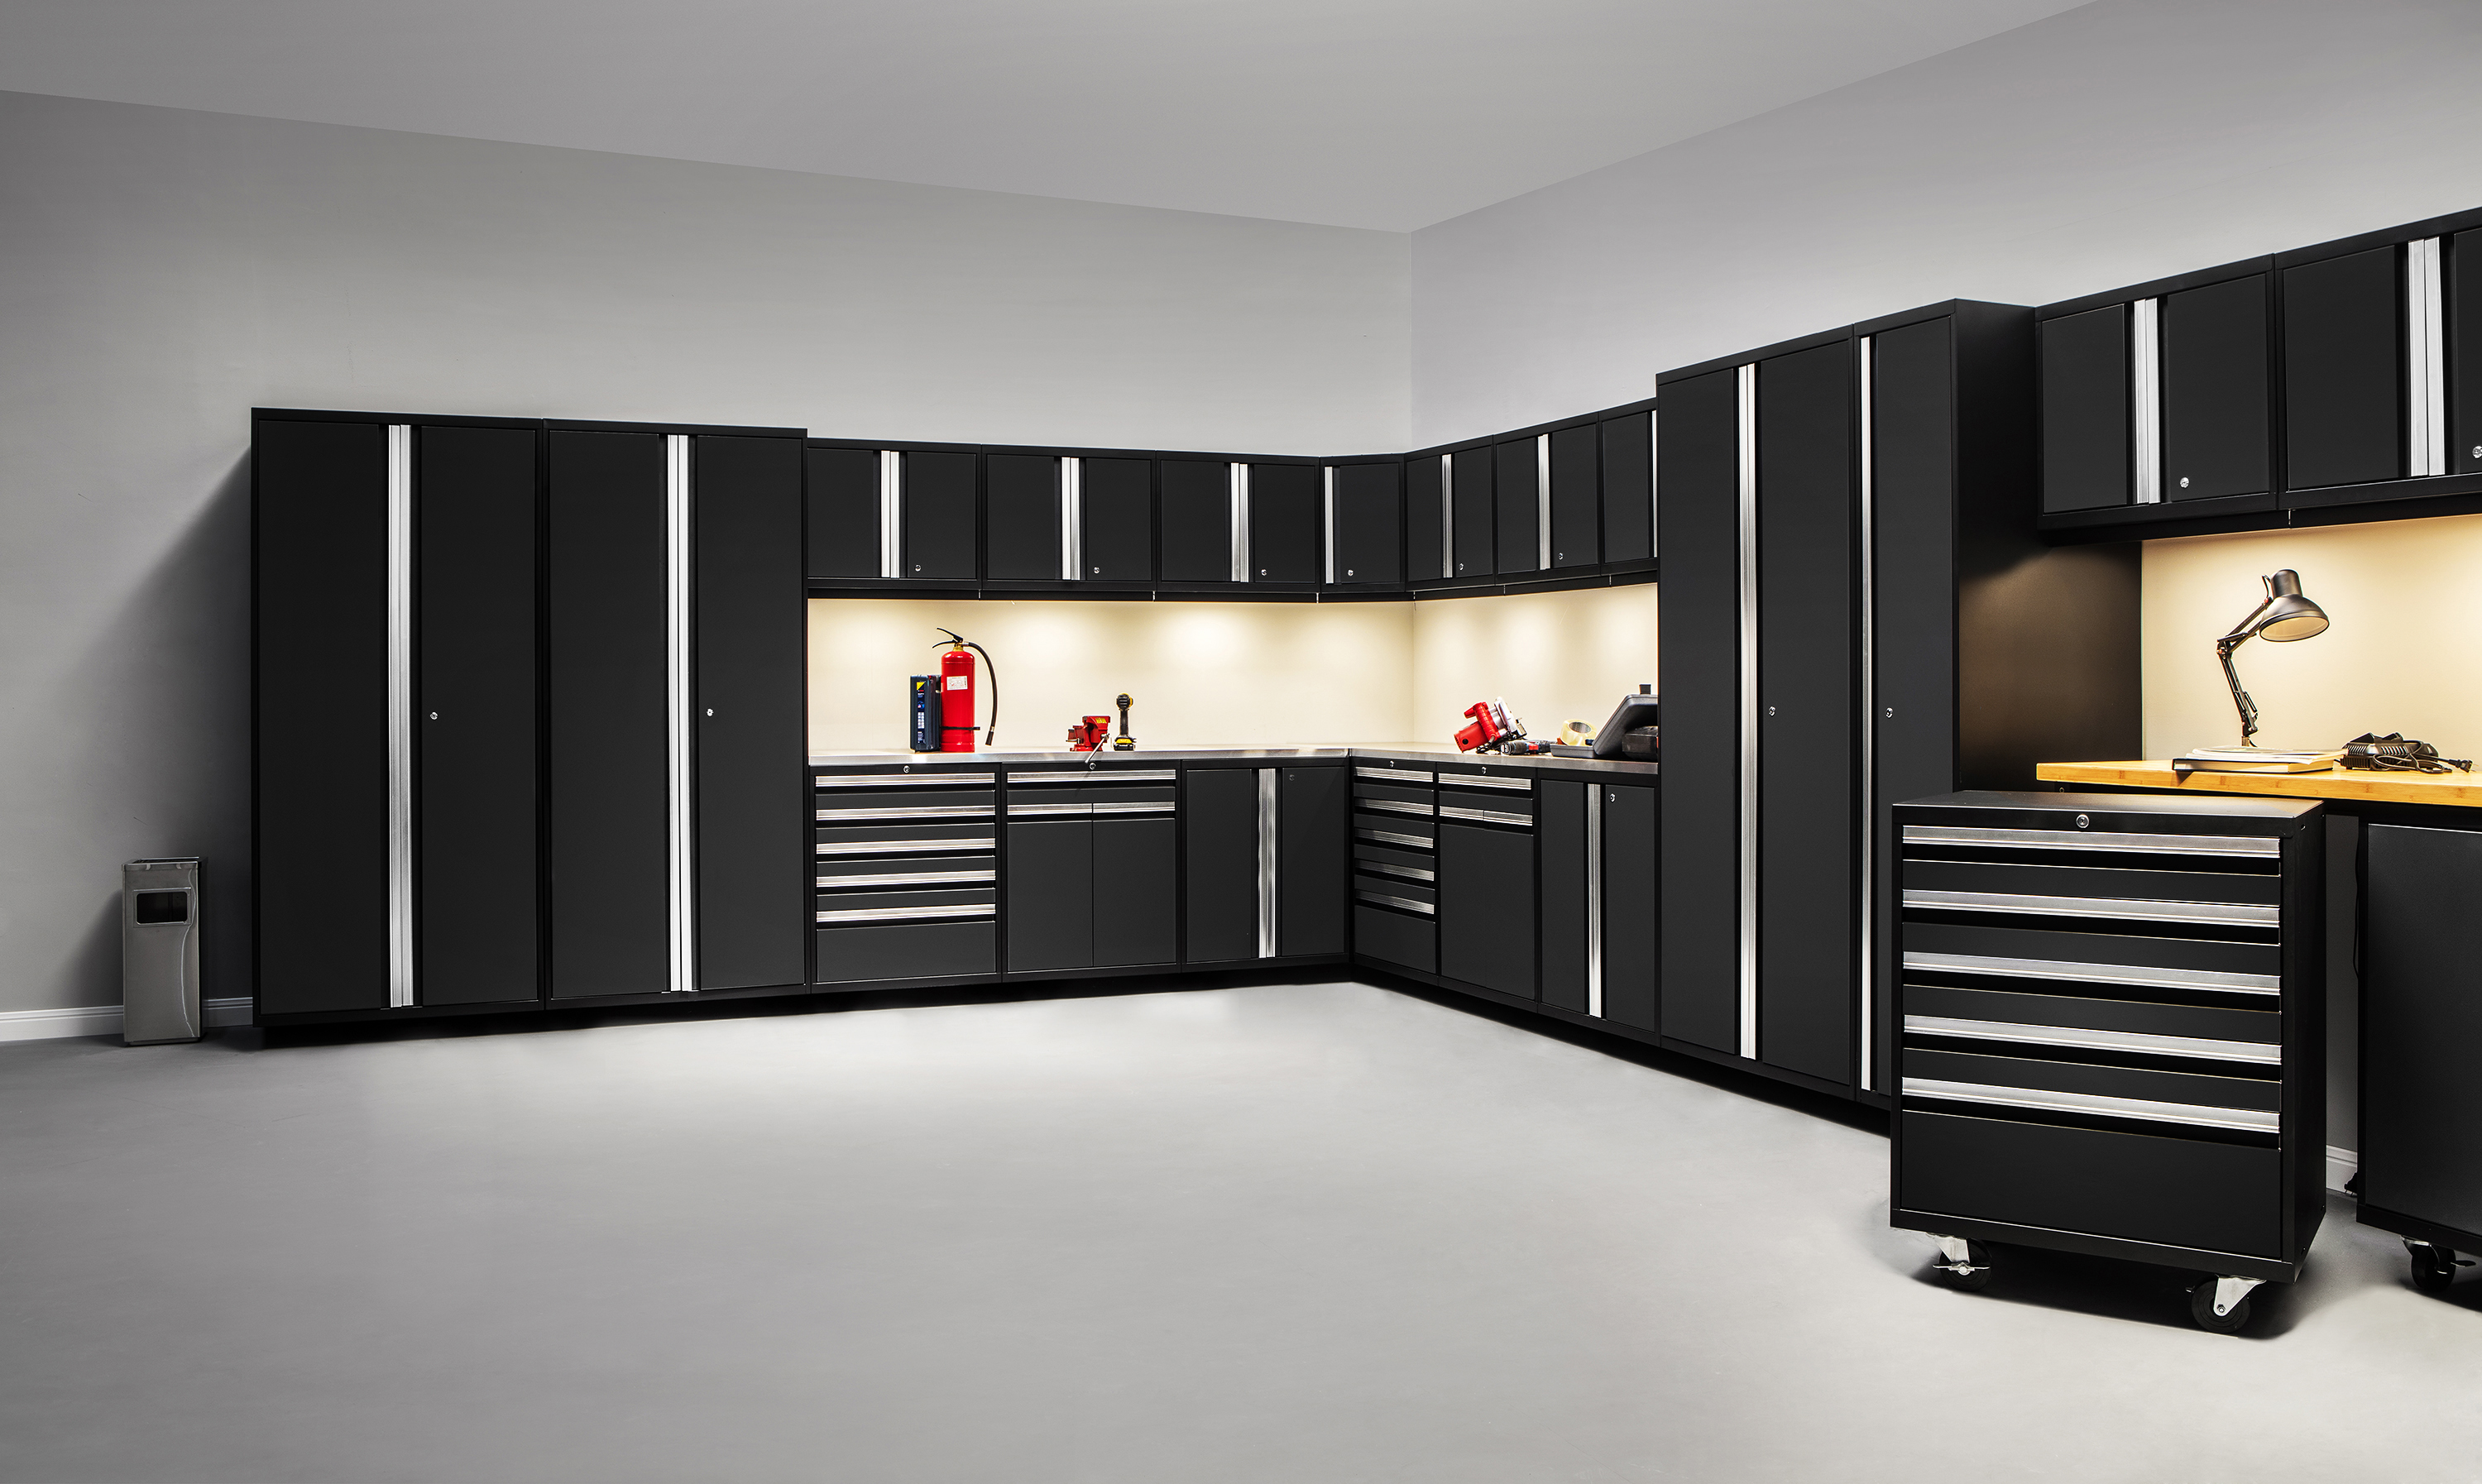 New Modular Garage Storage System by Tailored Living